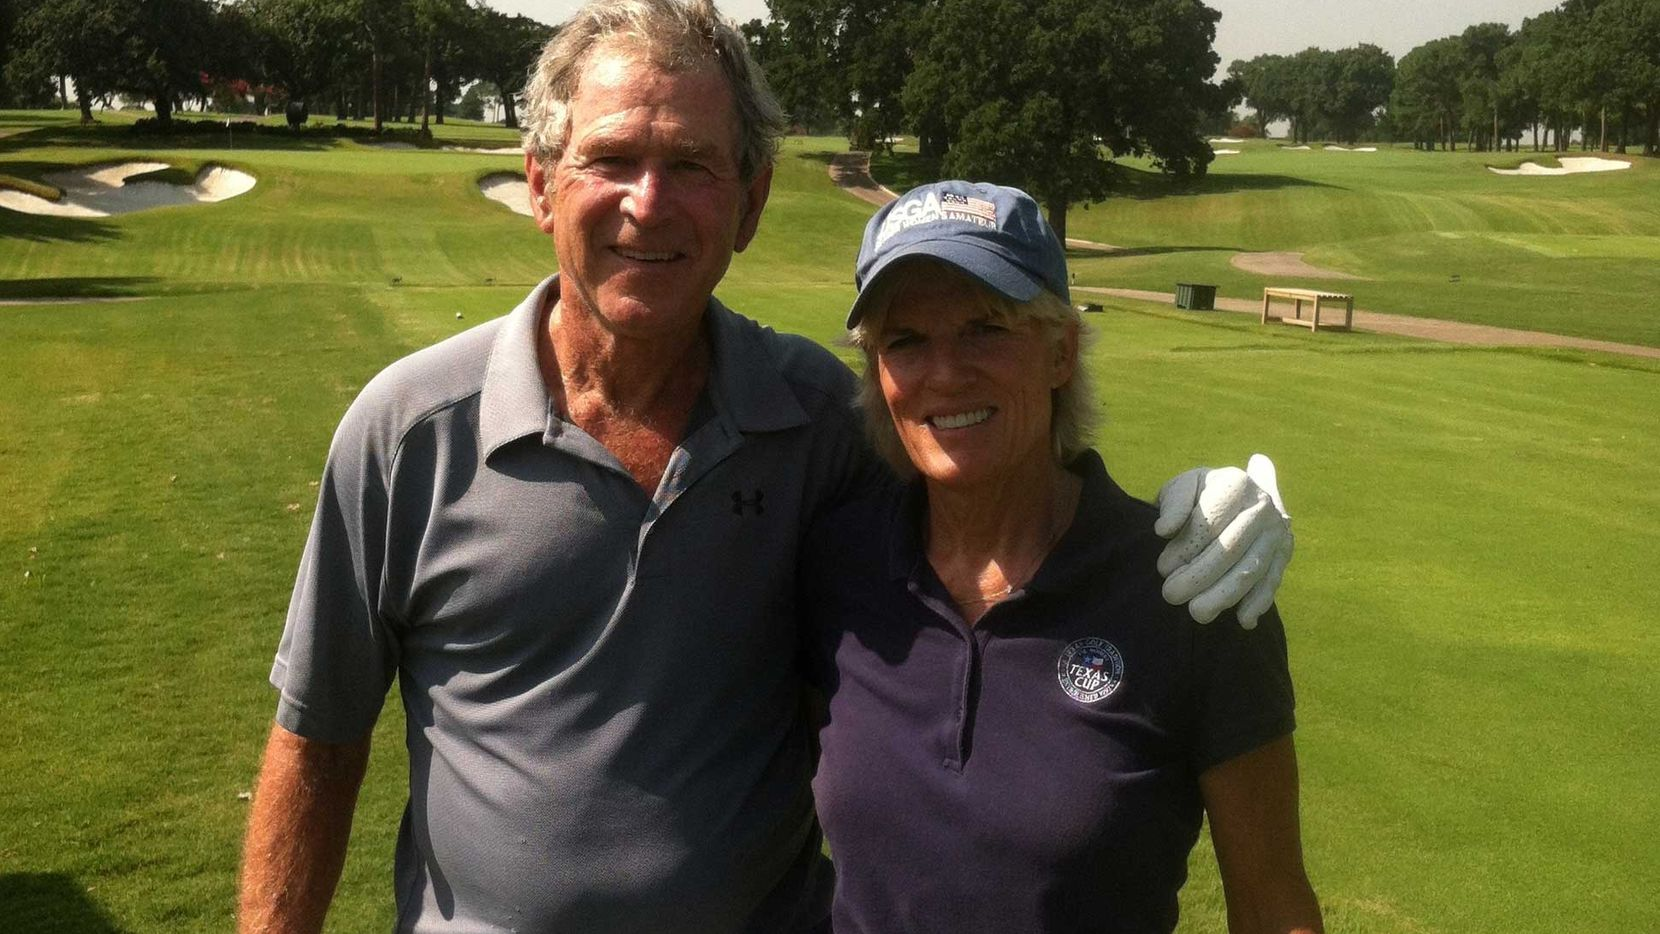 Carolyn Creekmore of Dallas made her fifth career hole in one on Aug. 1. Her playing partner at Brook Hollow Golf Club was former president George W. Bush.